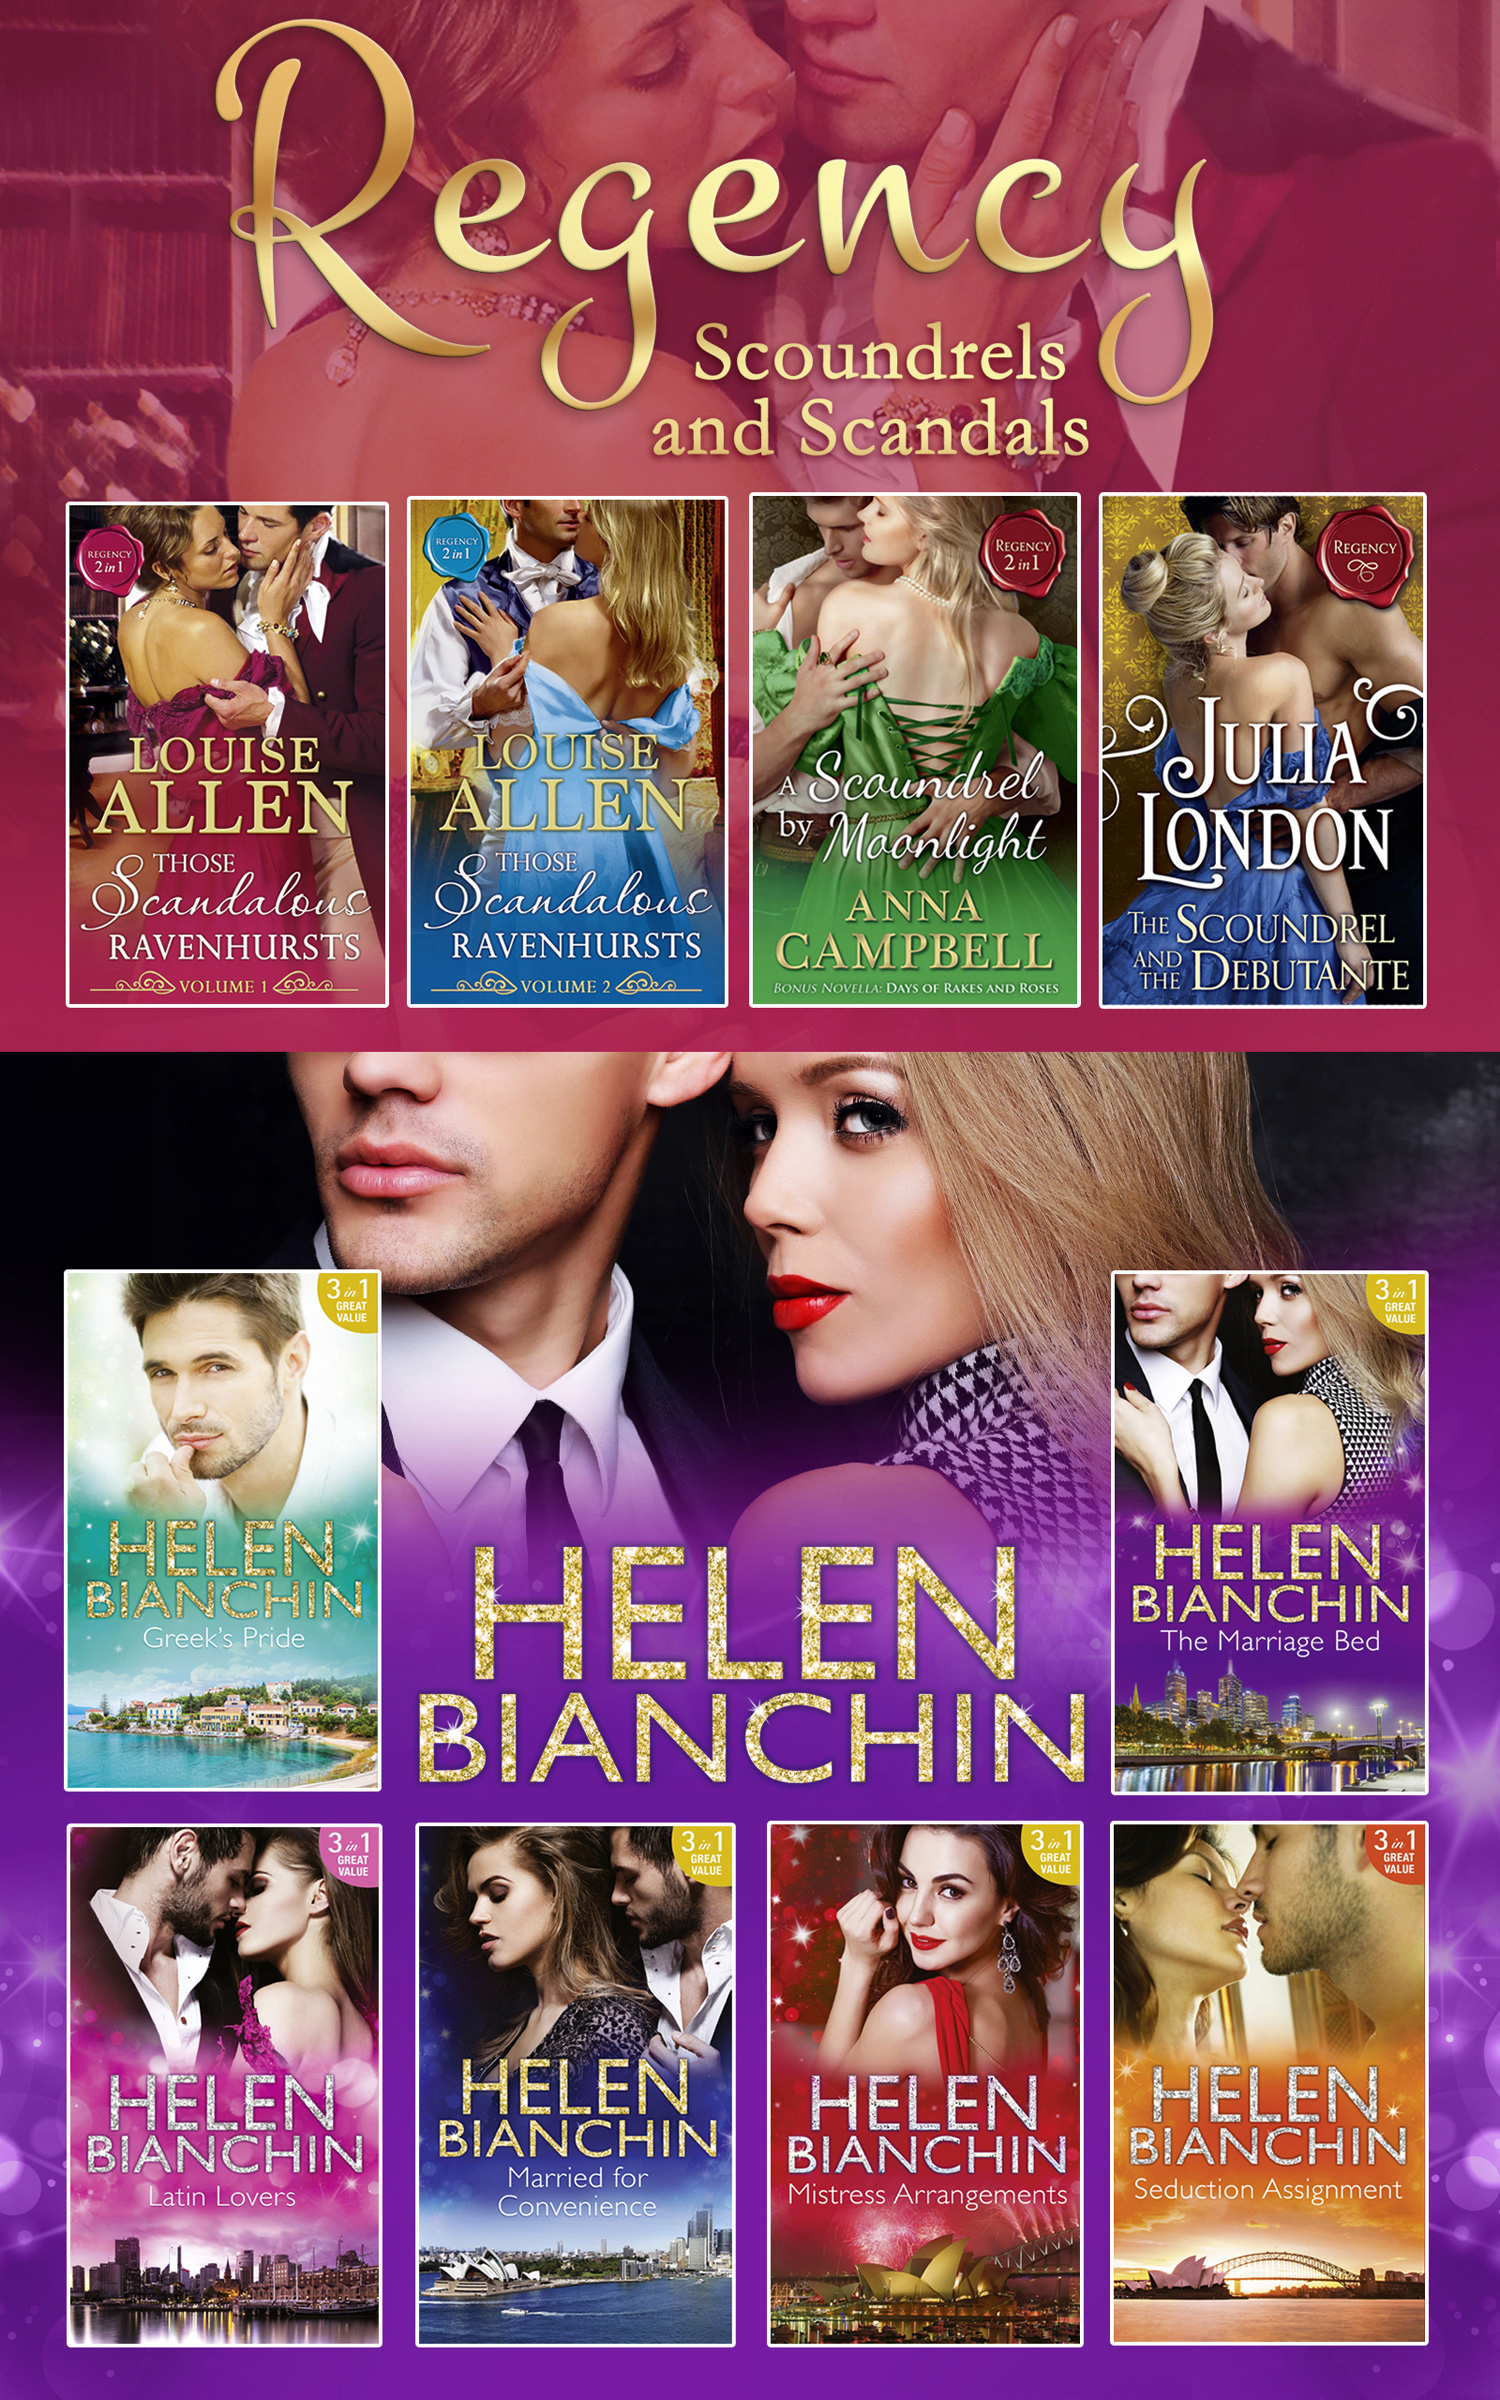 The Helen Bianchin And The Regency Scoundrels And Scandals Collections